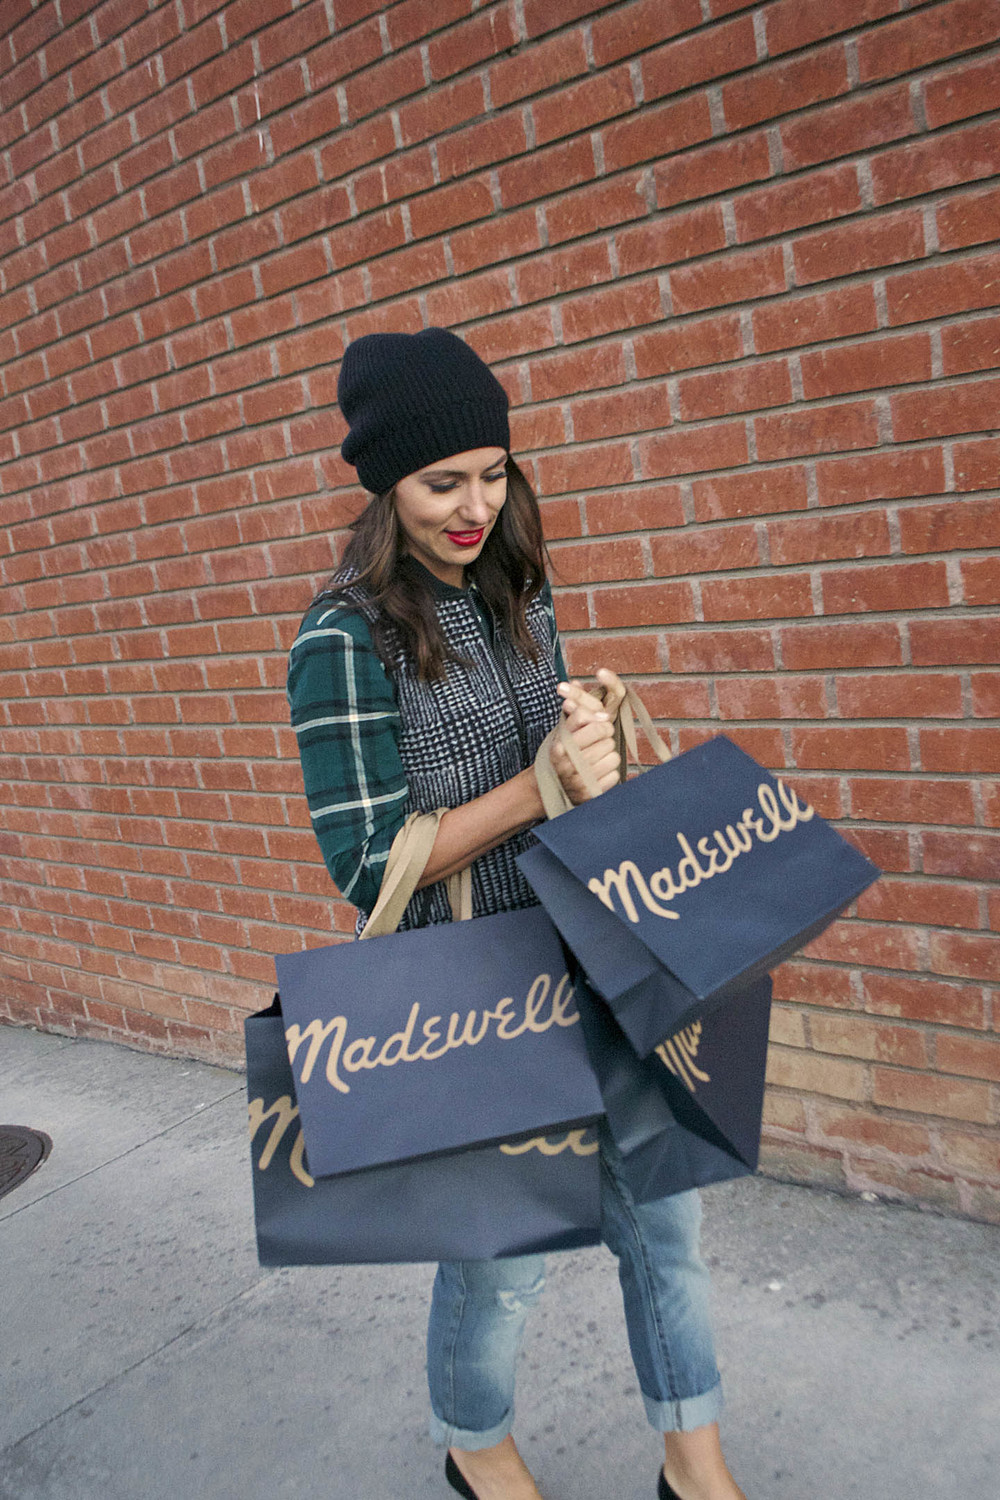 Madewell fall fashion